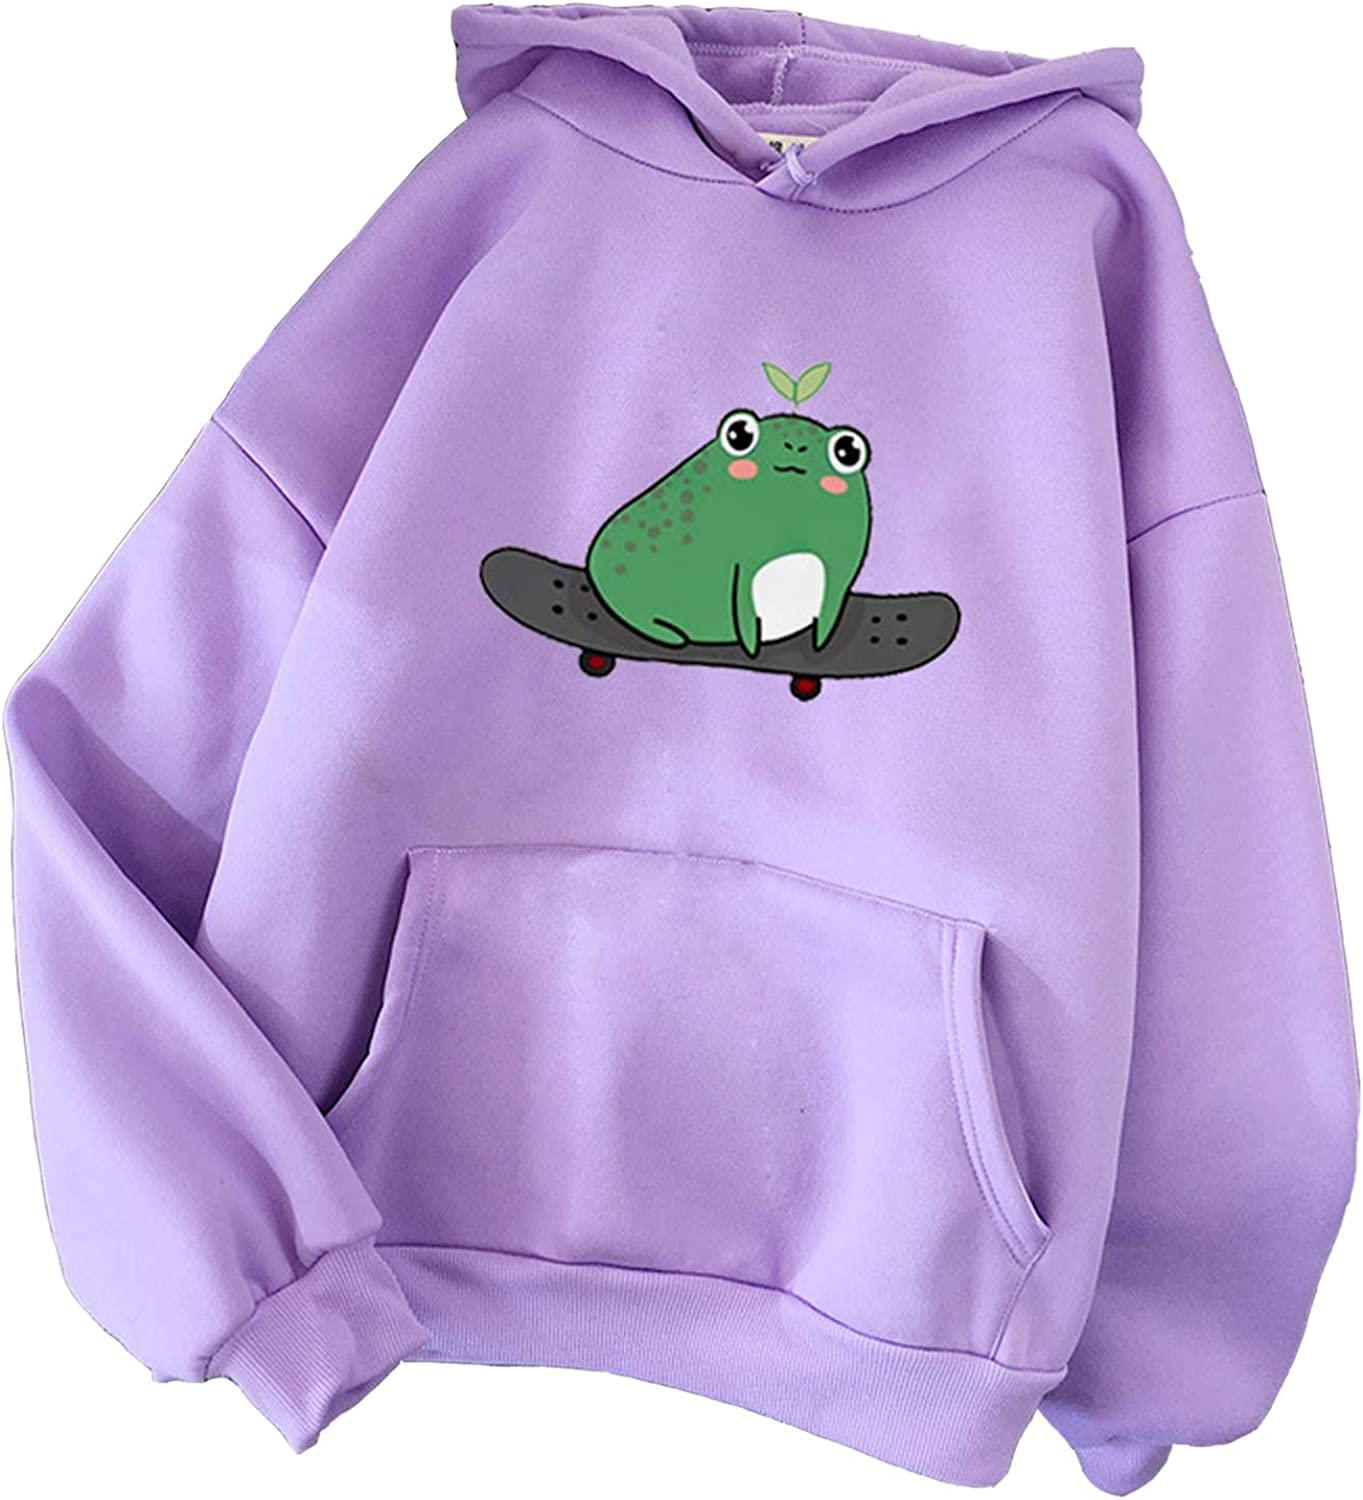 Aiouios Tops for Women Loose Fit, Hoodies for Women Pullover Graphic Cute Cartoon Frog Blouses Long Sleeve Sweatshirts